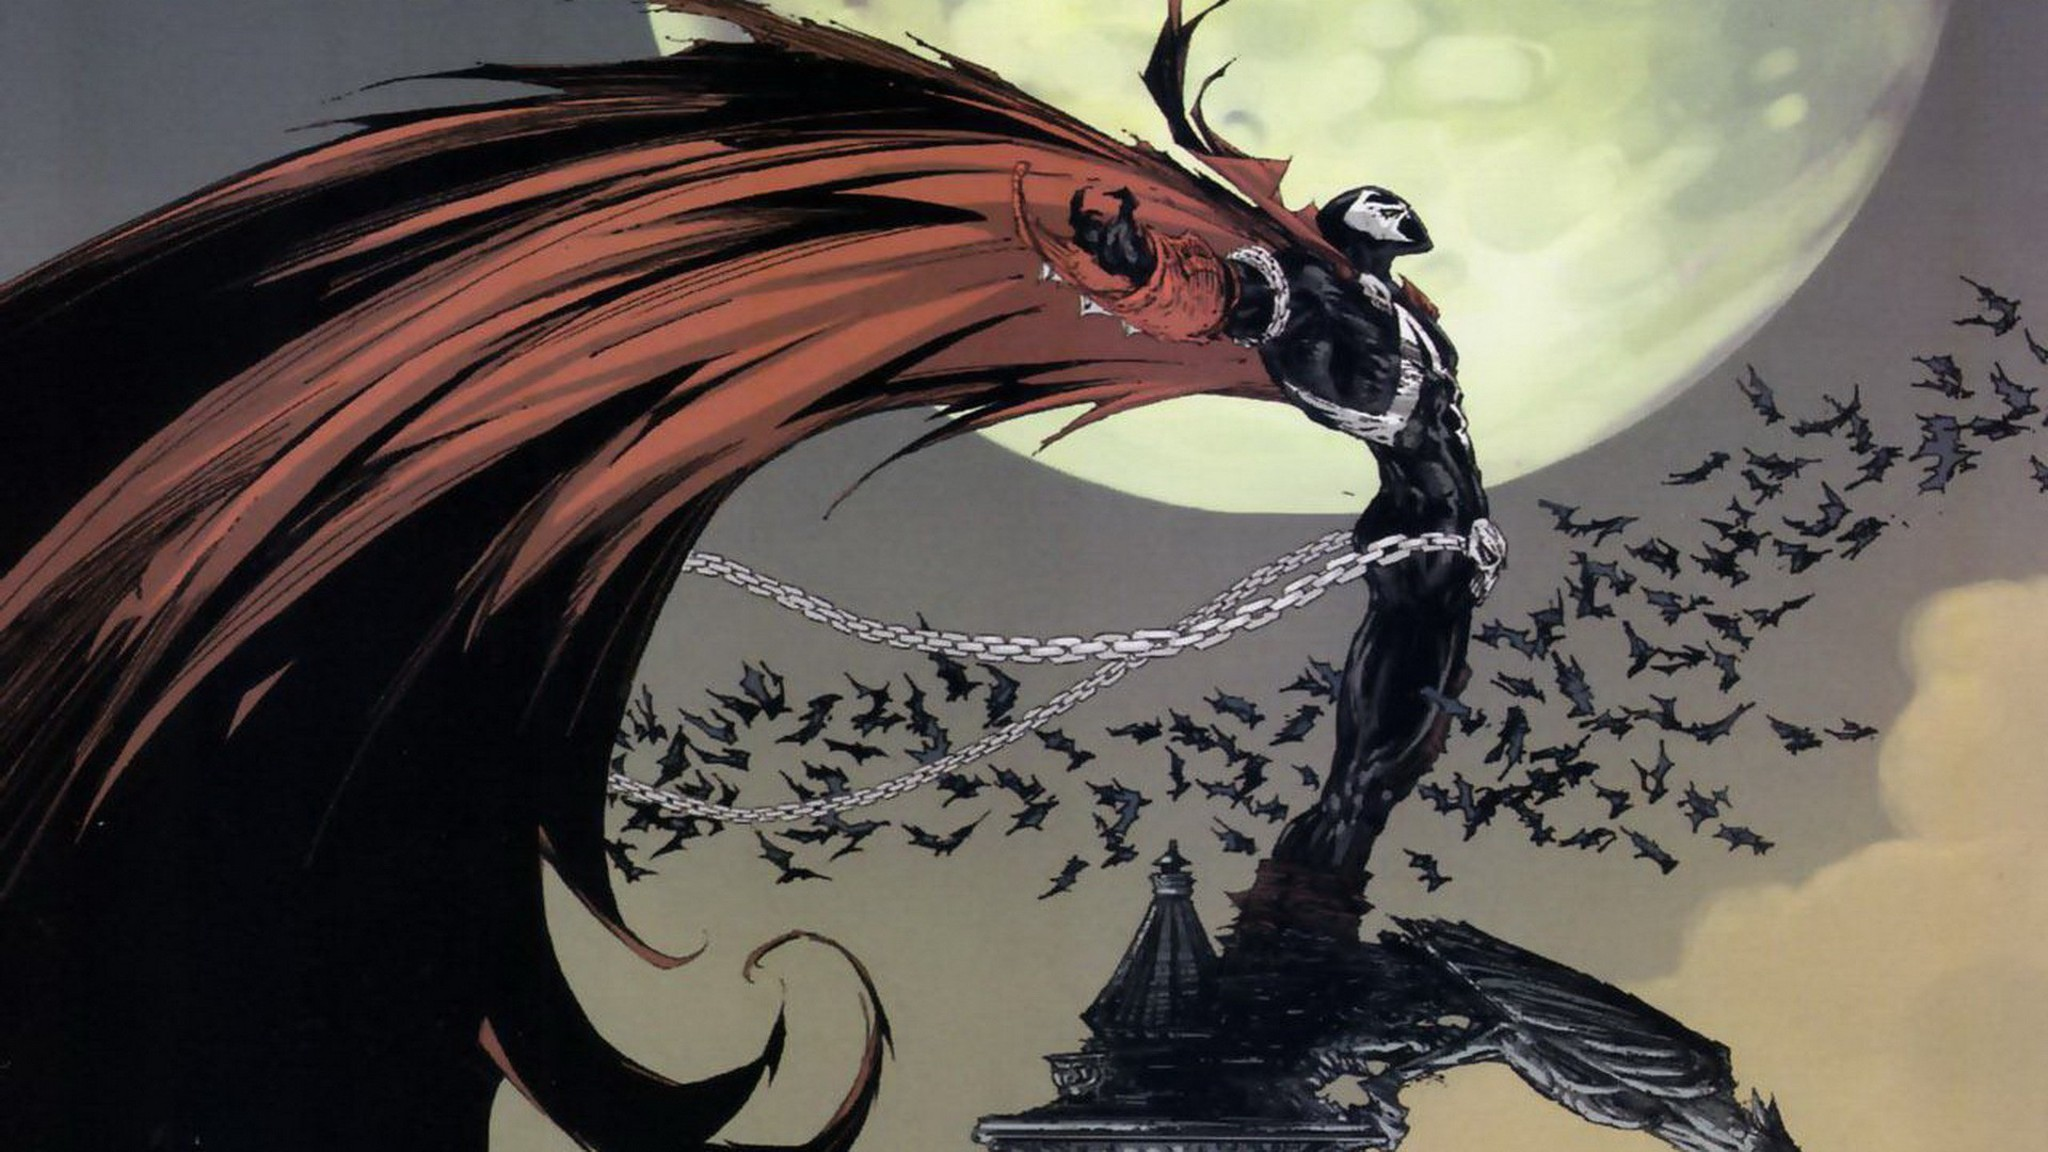 Animated Wallpapers Hd 1080p Spawn Comics Image Wallpaper Allwallpaper In 10091 Pc